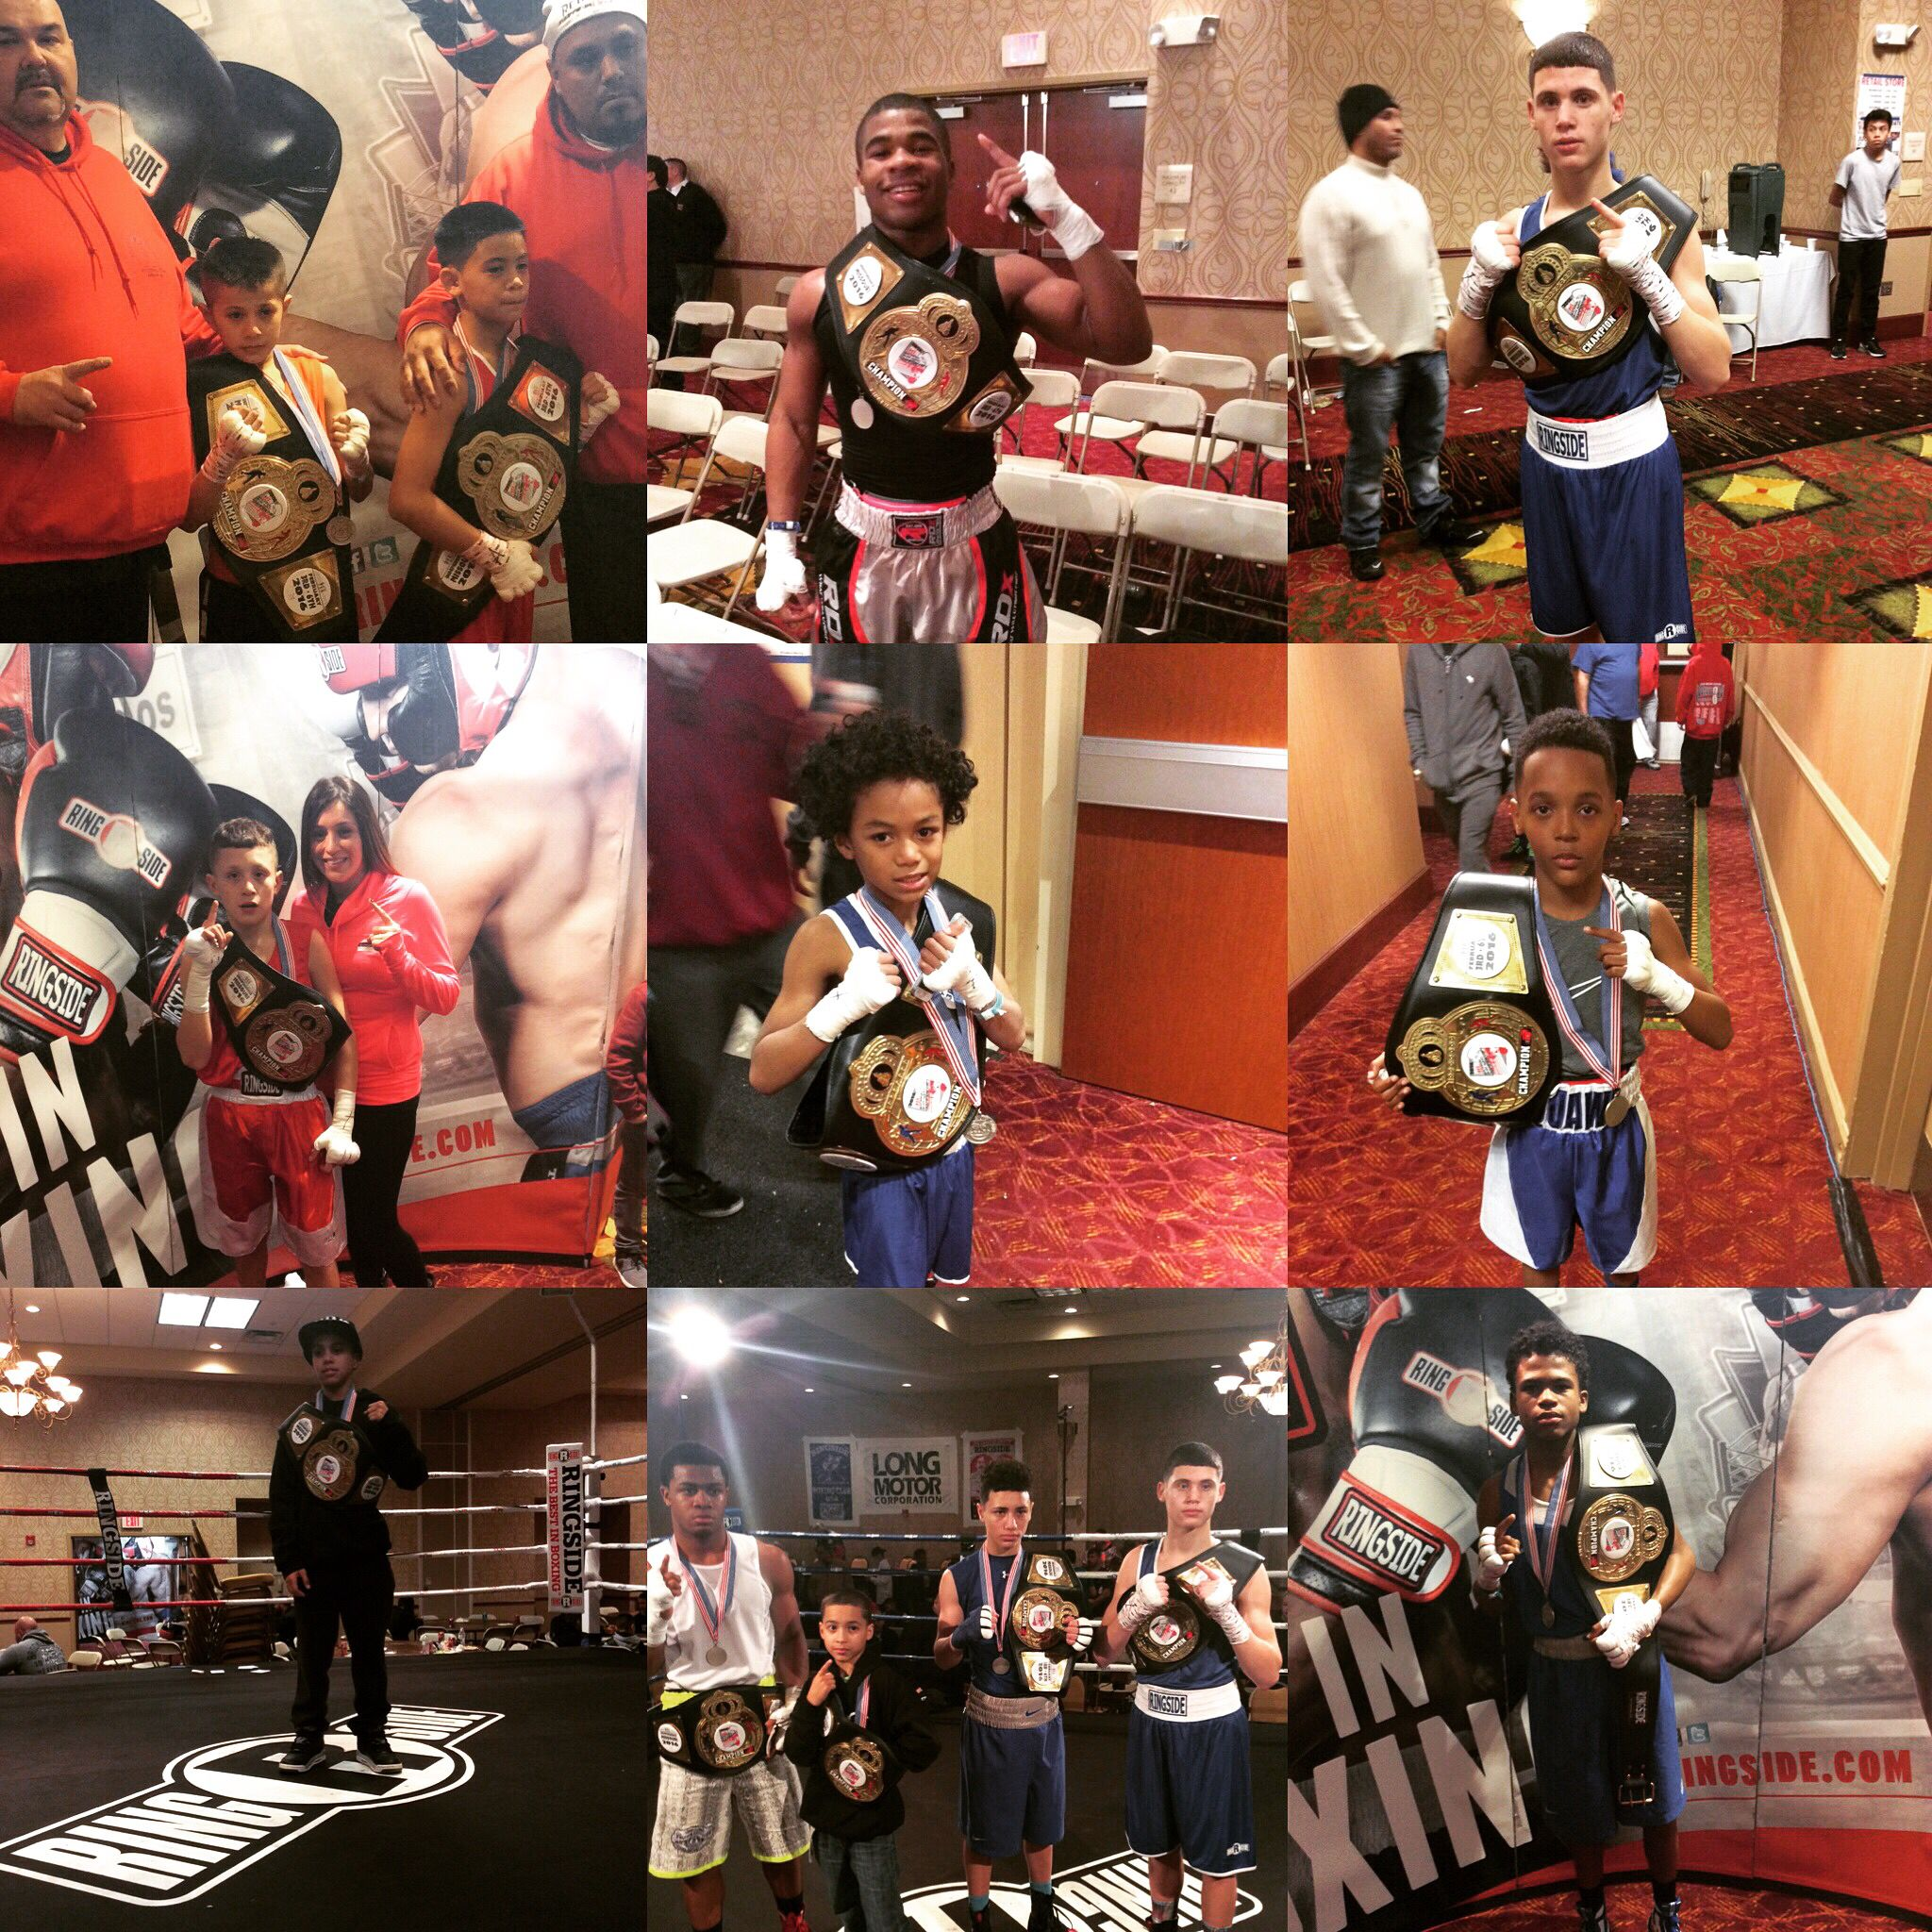 Pin On Boxing Events